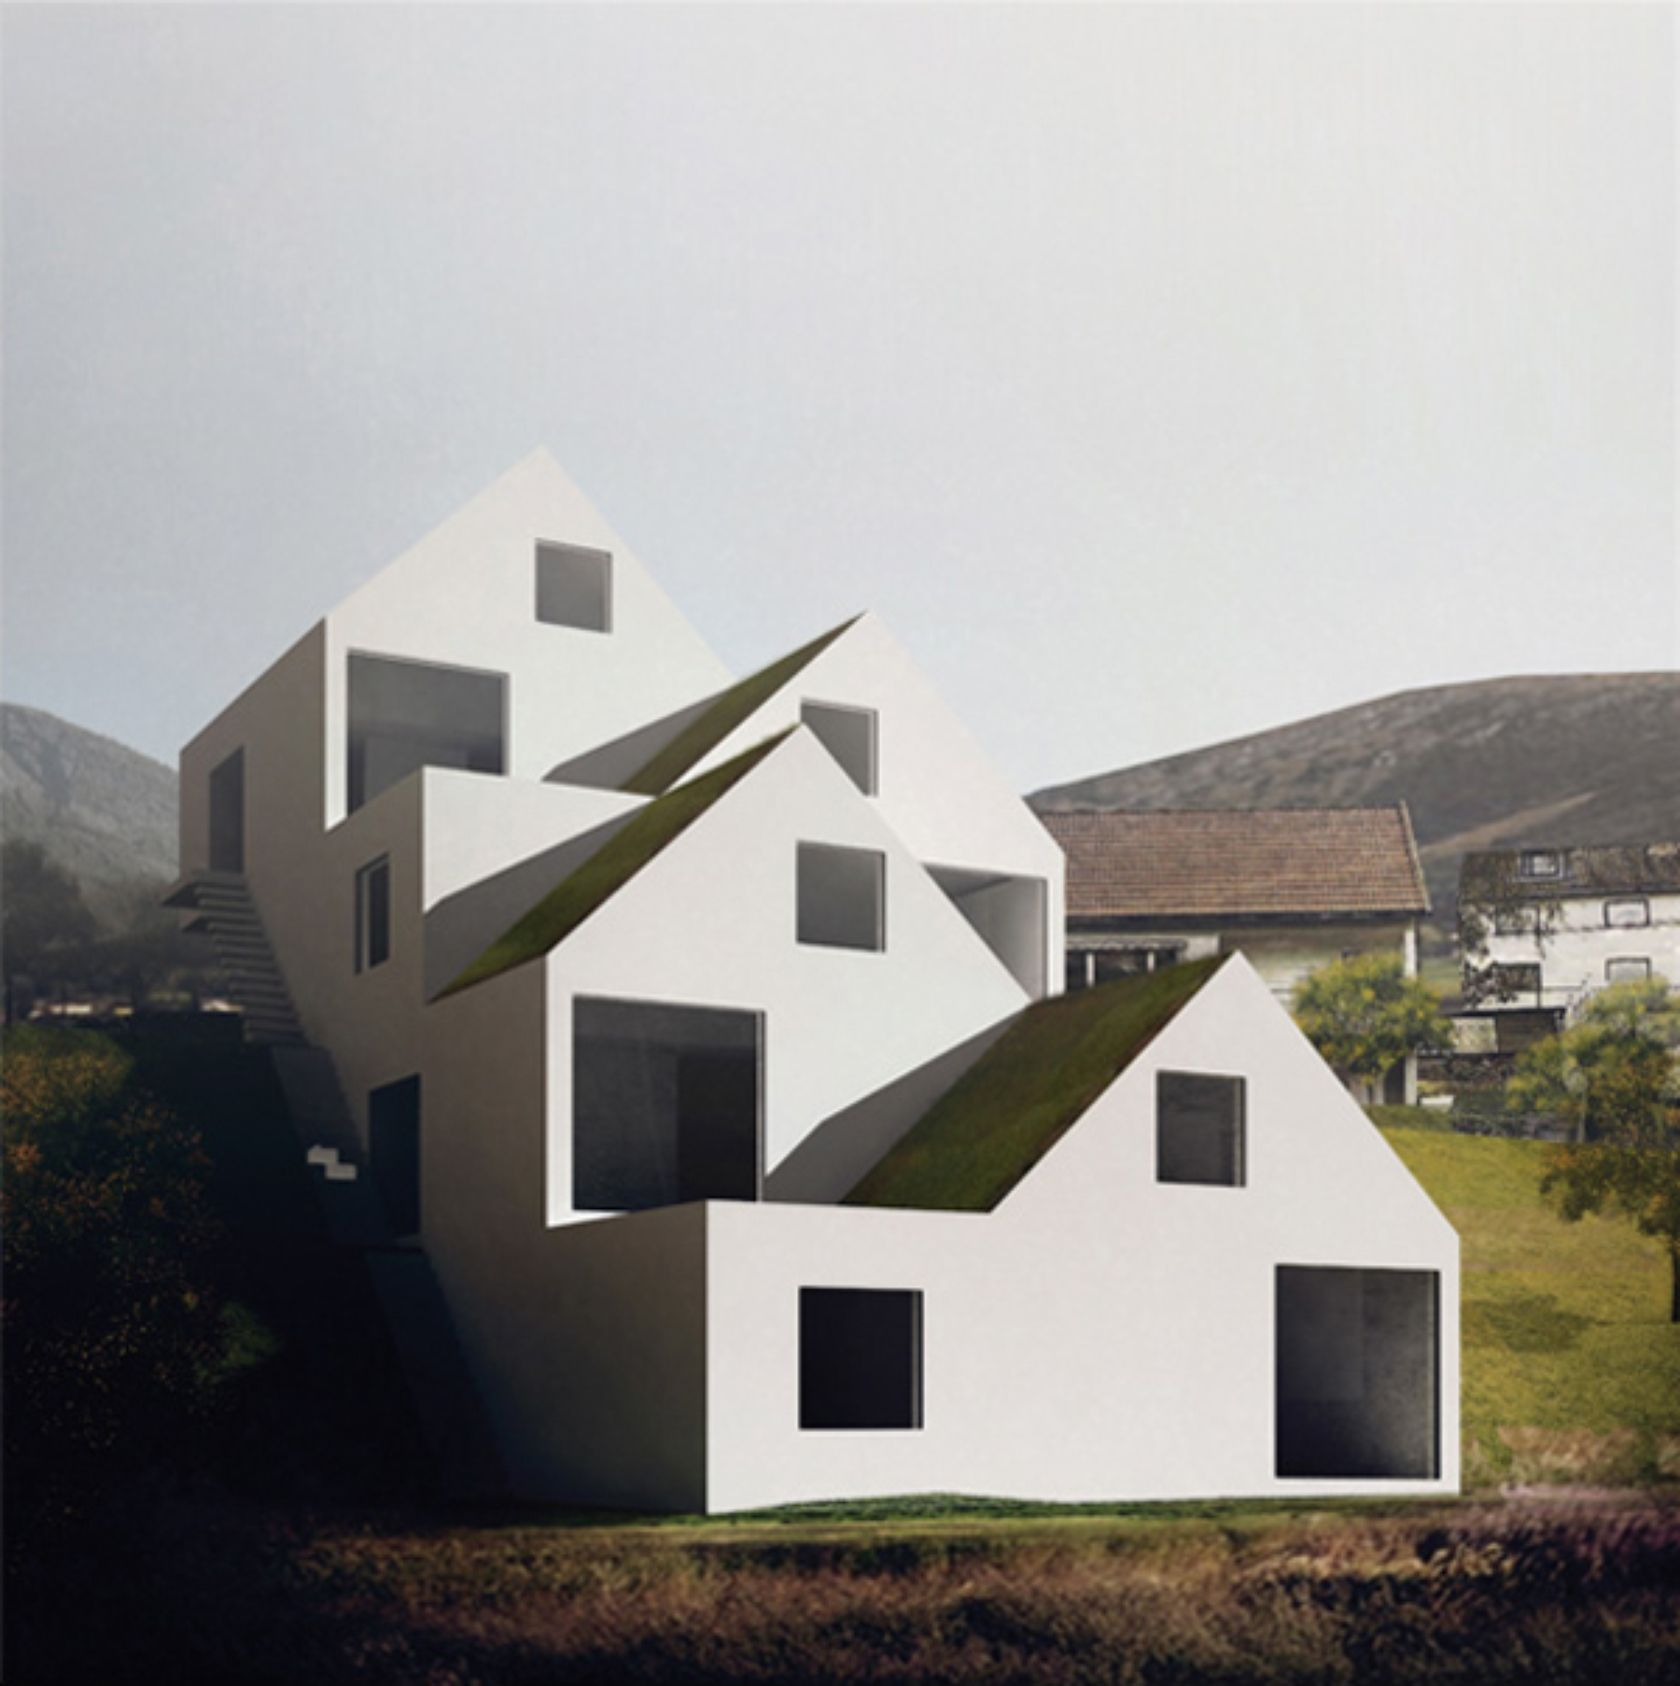 4 houses oslo norway conceptual pinterest for Casa moderna arquitectura